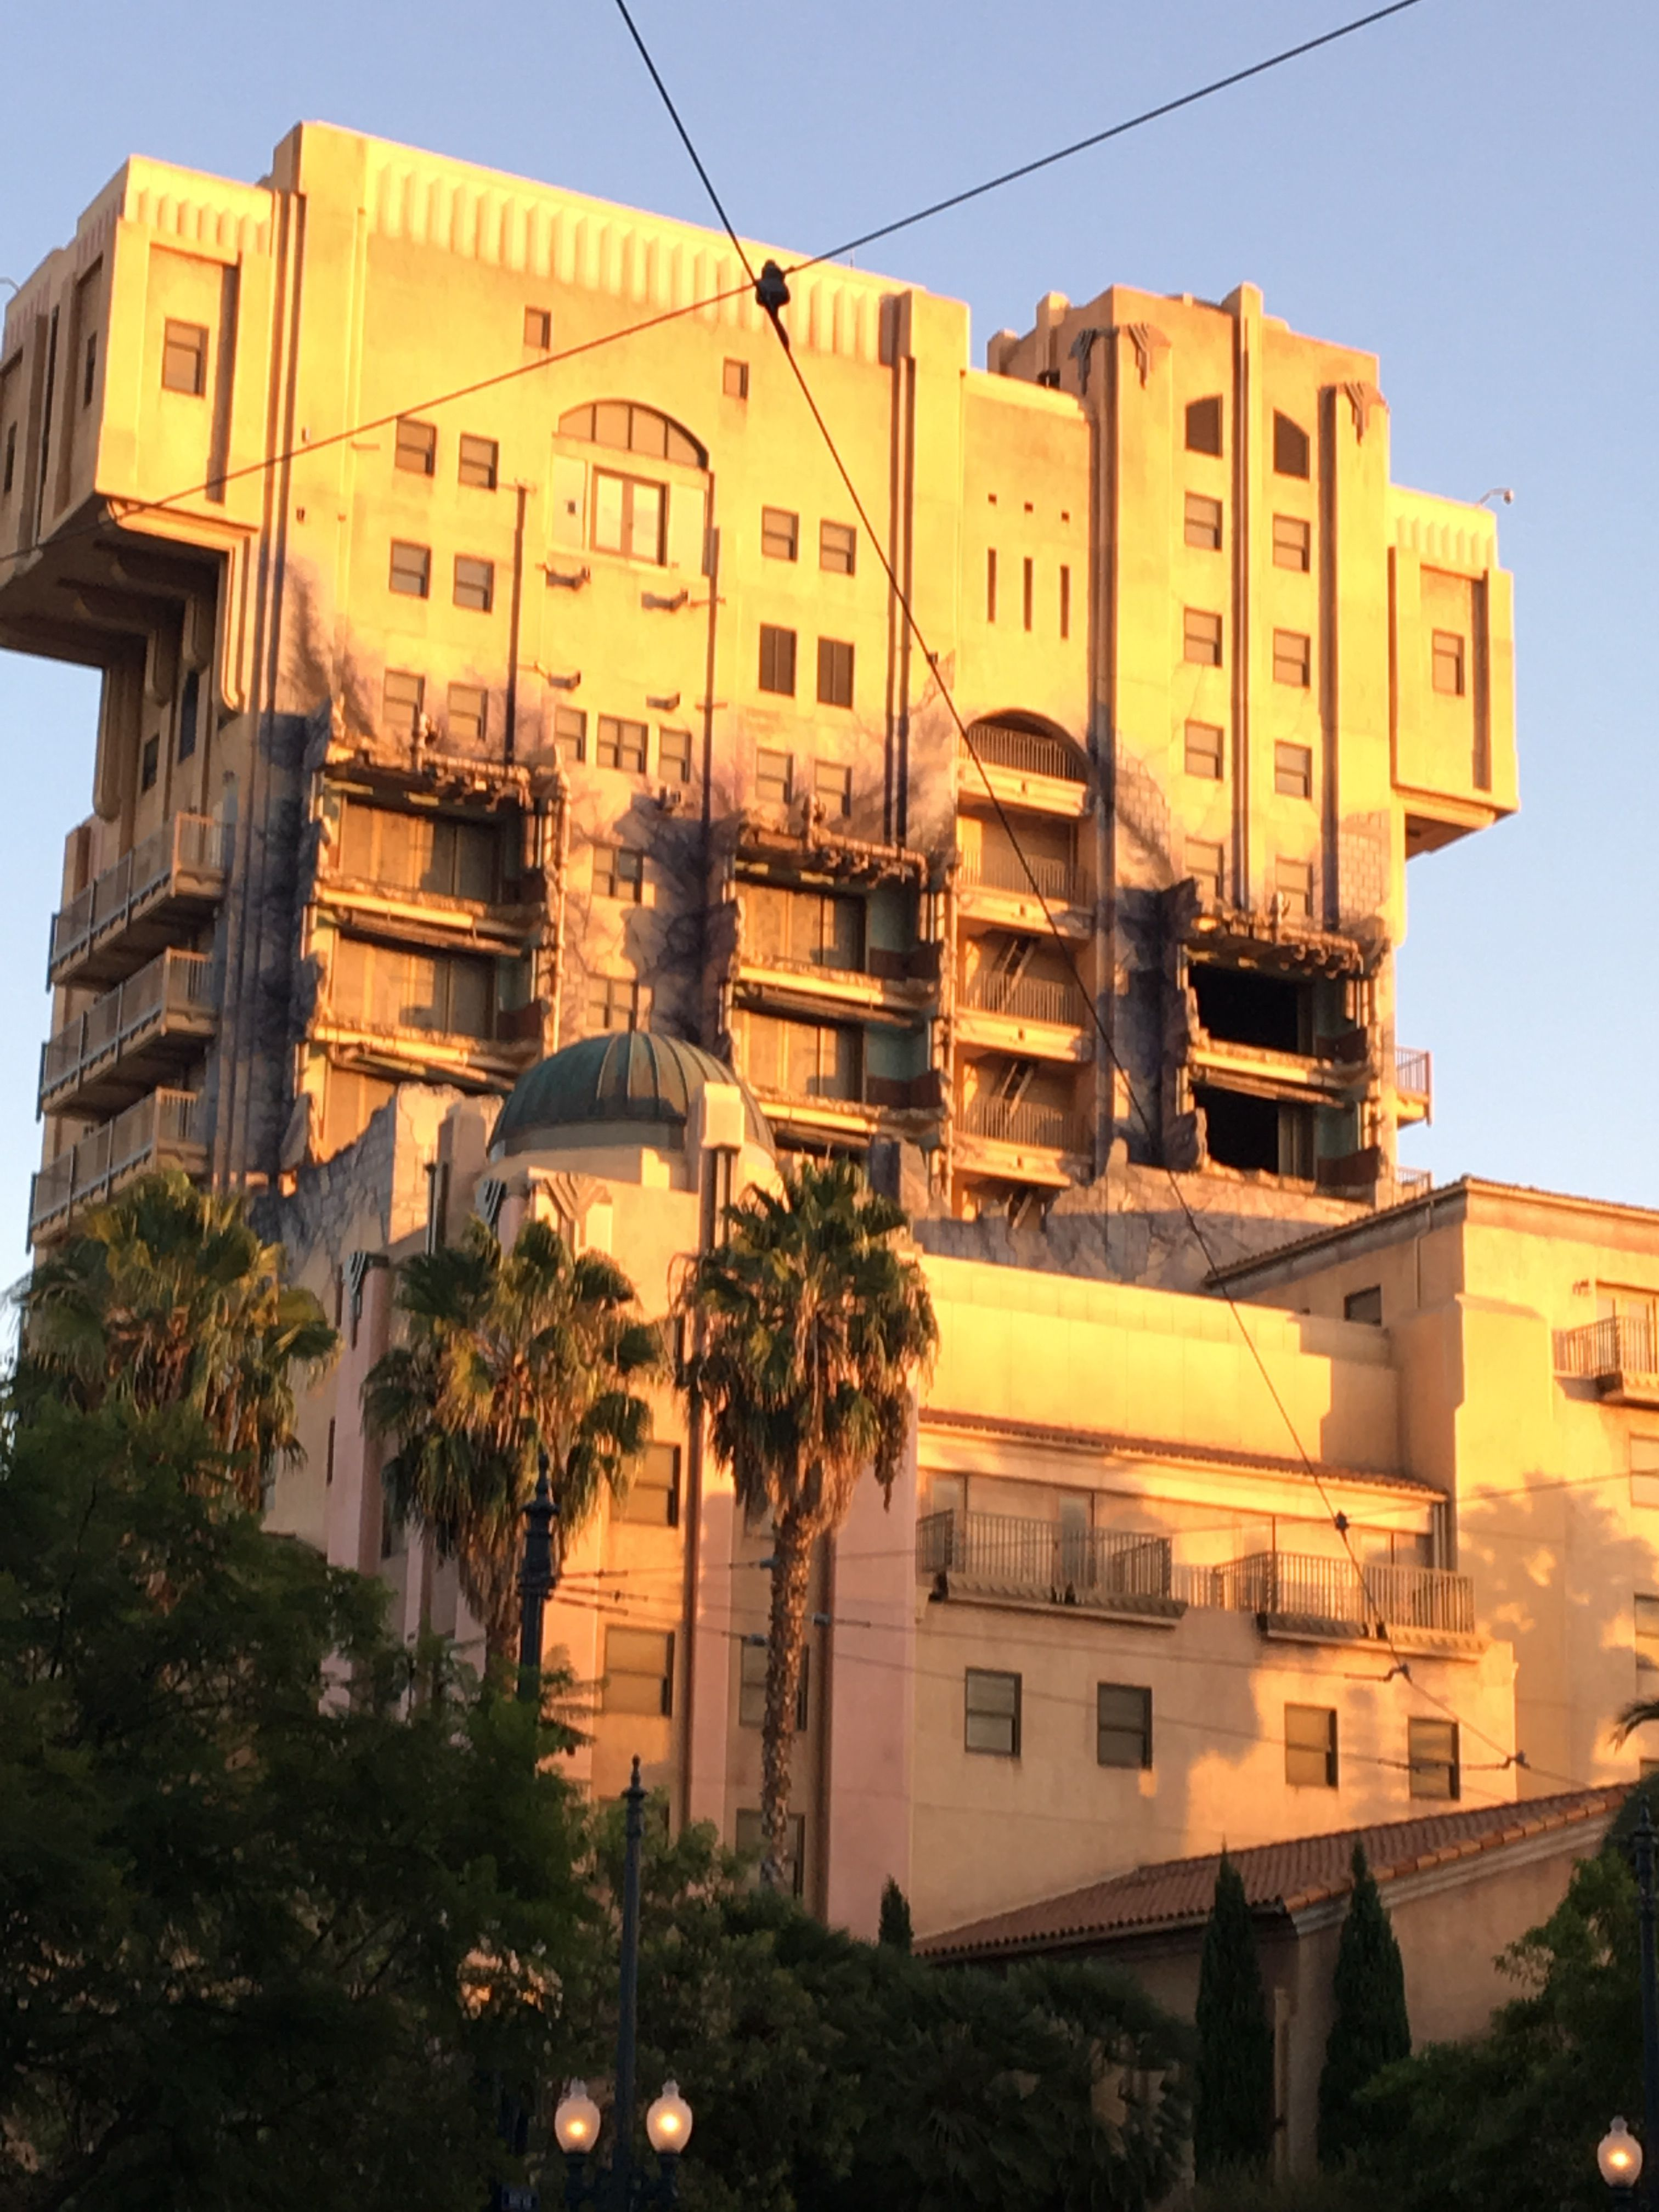 Tower of Terror without logo... getting closer to closing 😢